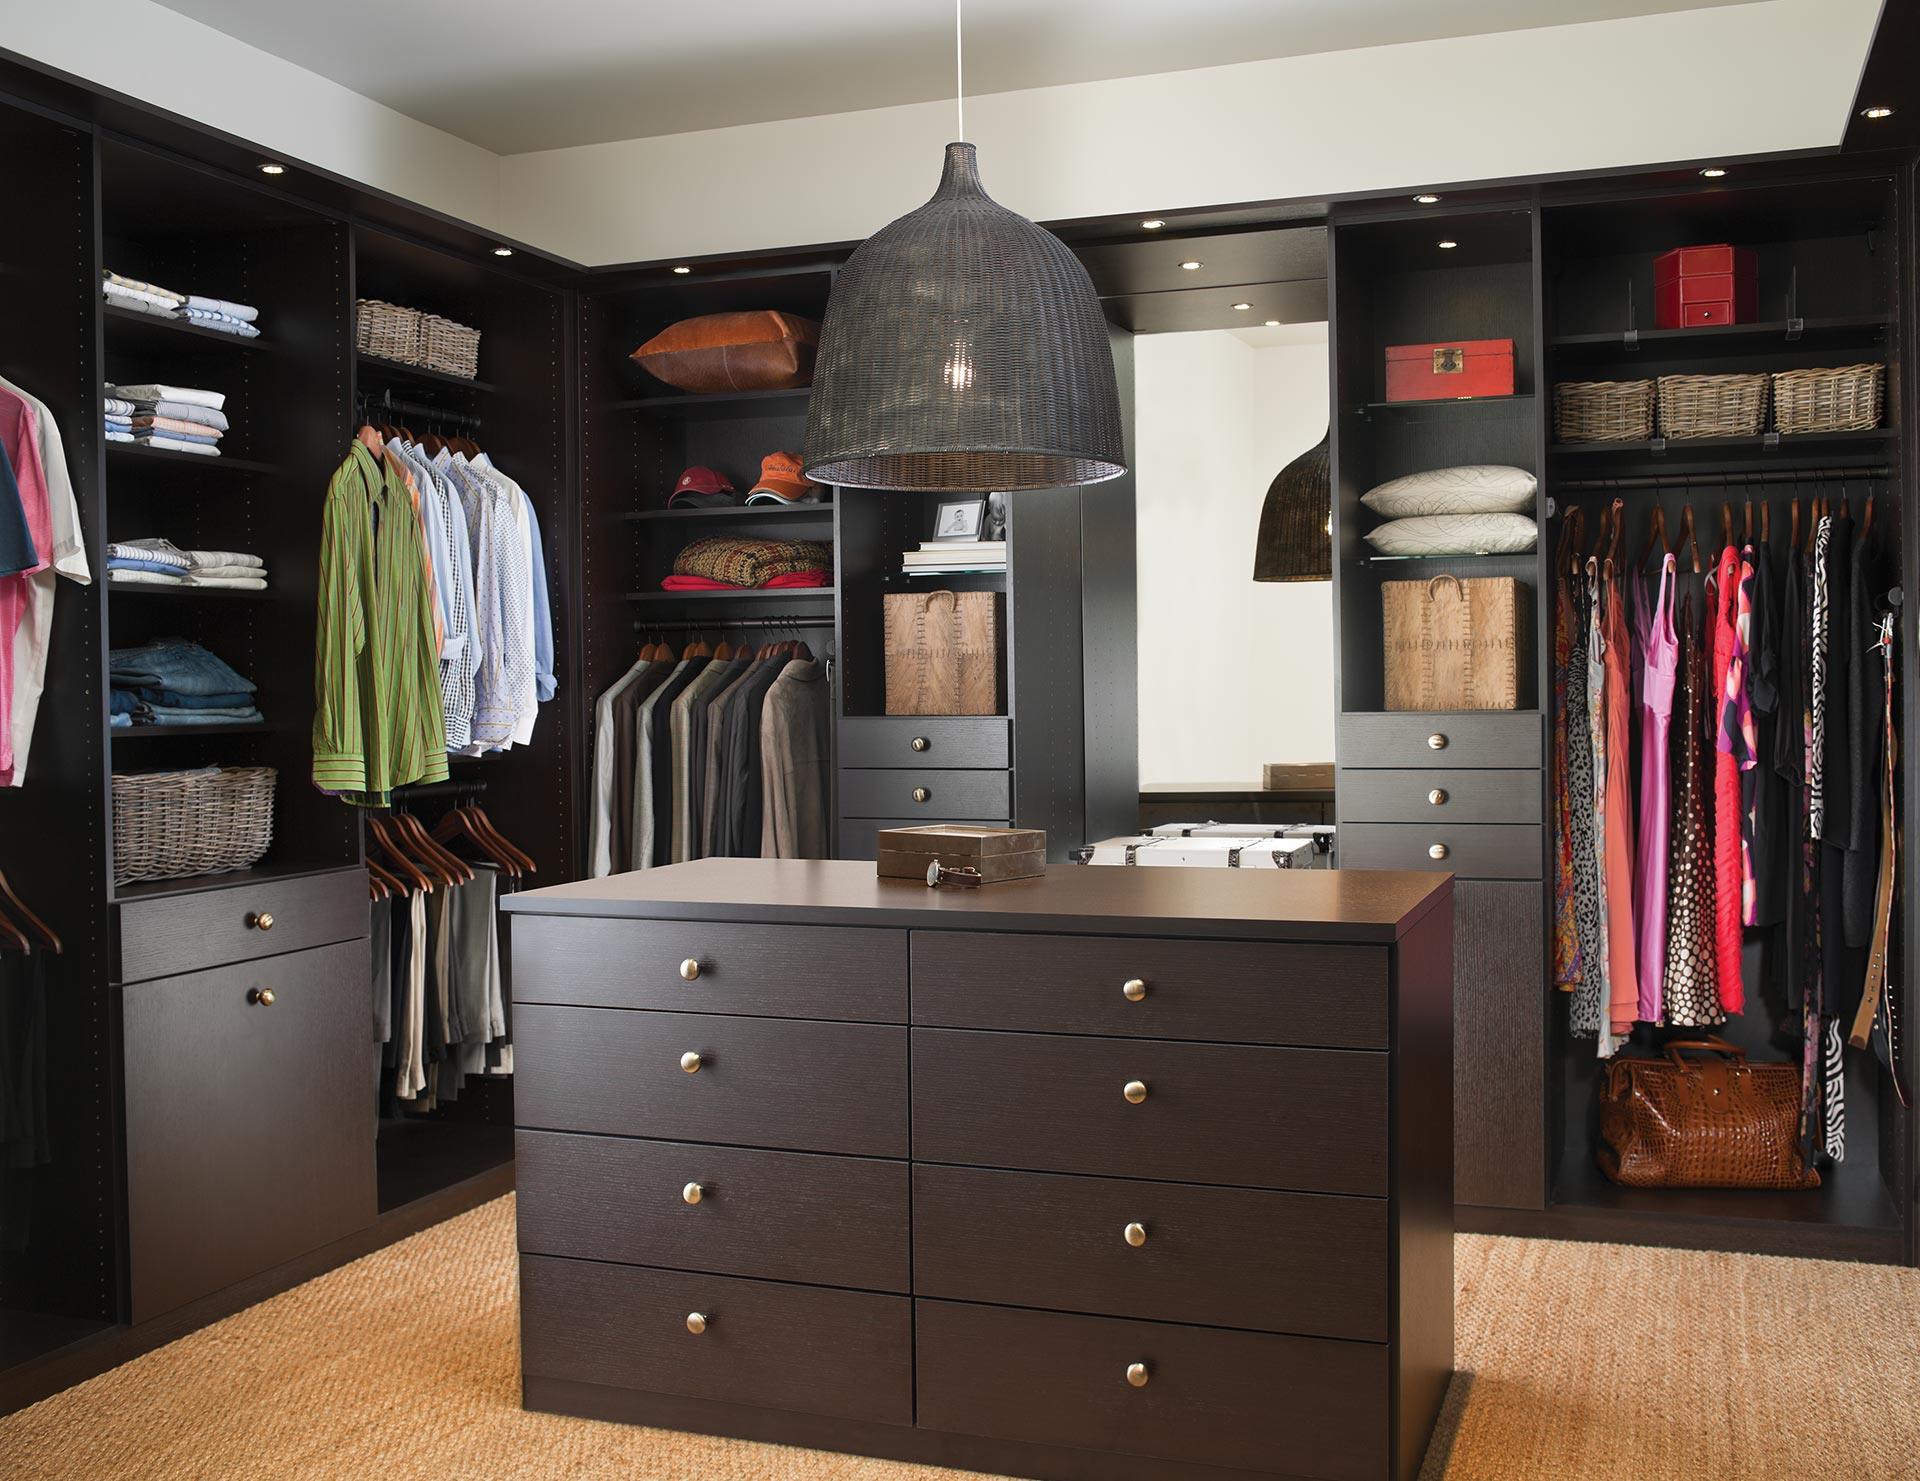 California Closets Calgary - Lee Master Walk in Closet Storage Solution